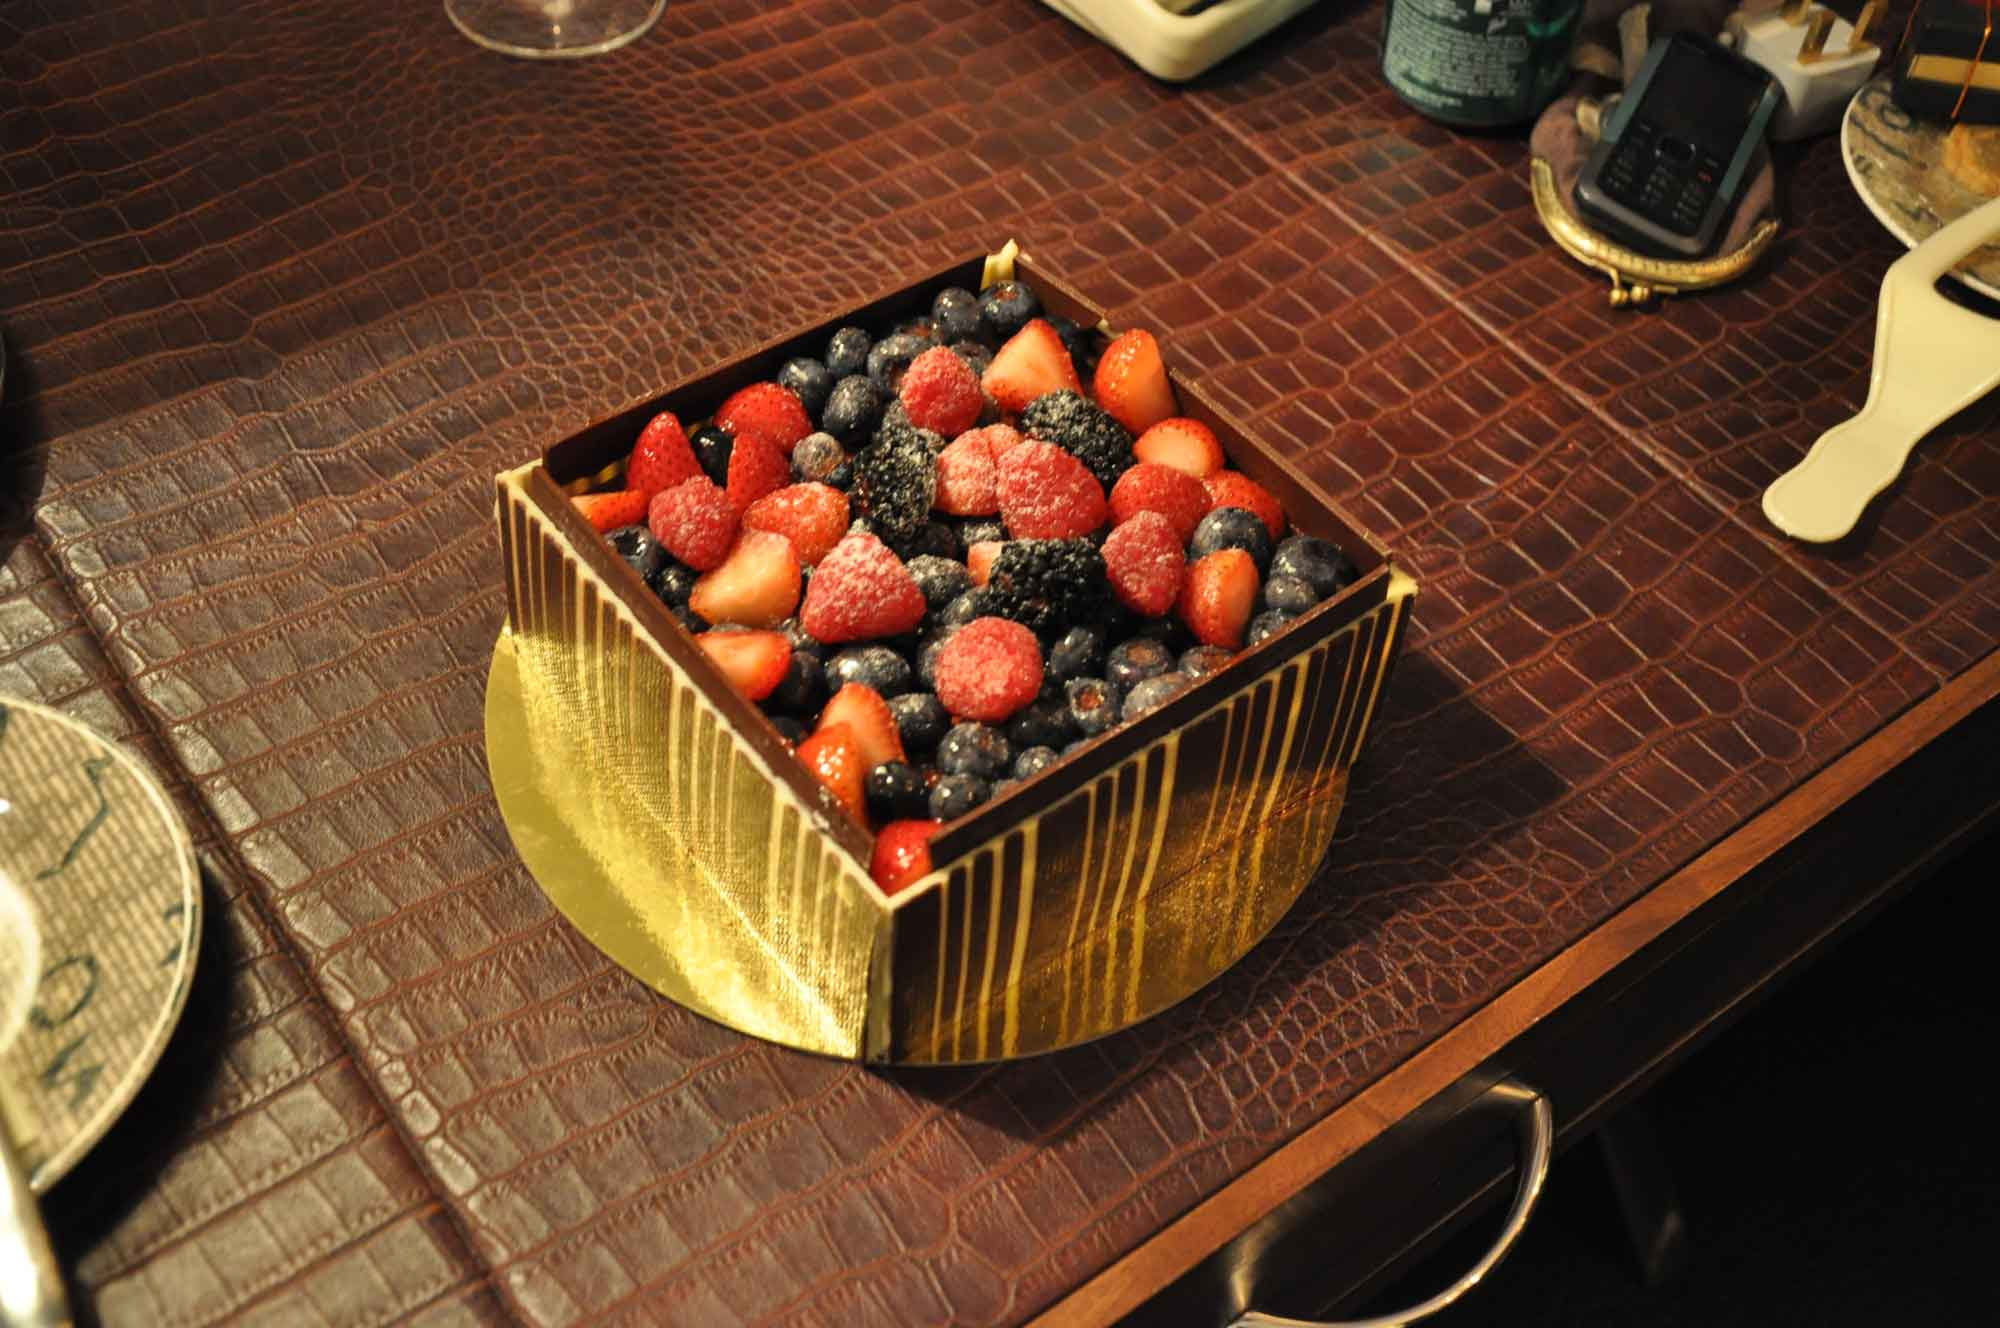 Lisboa Dessert Stand Chocolate Cake with fruit